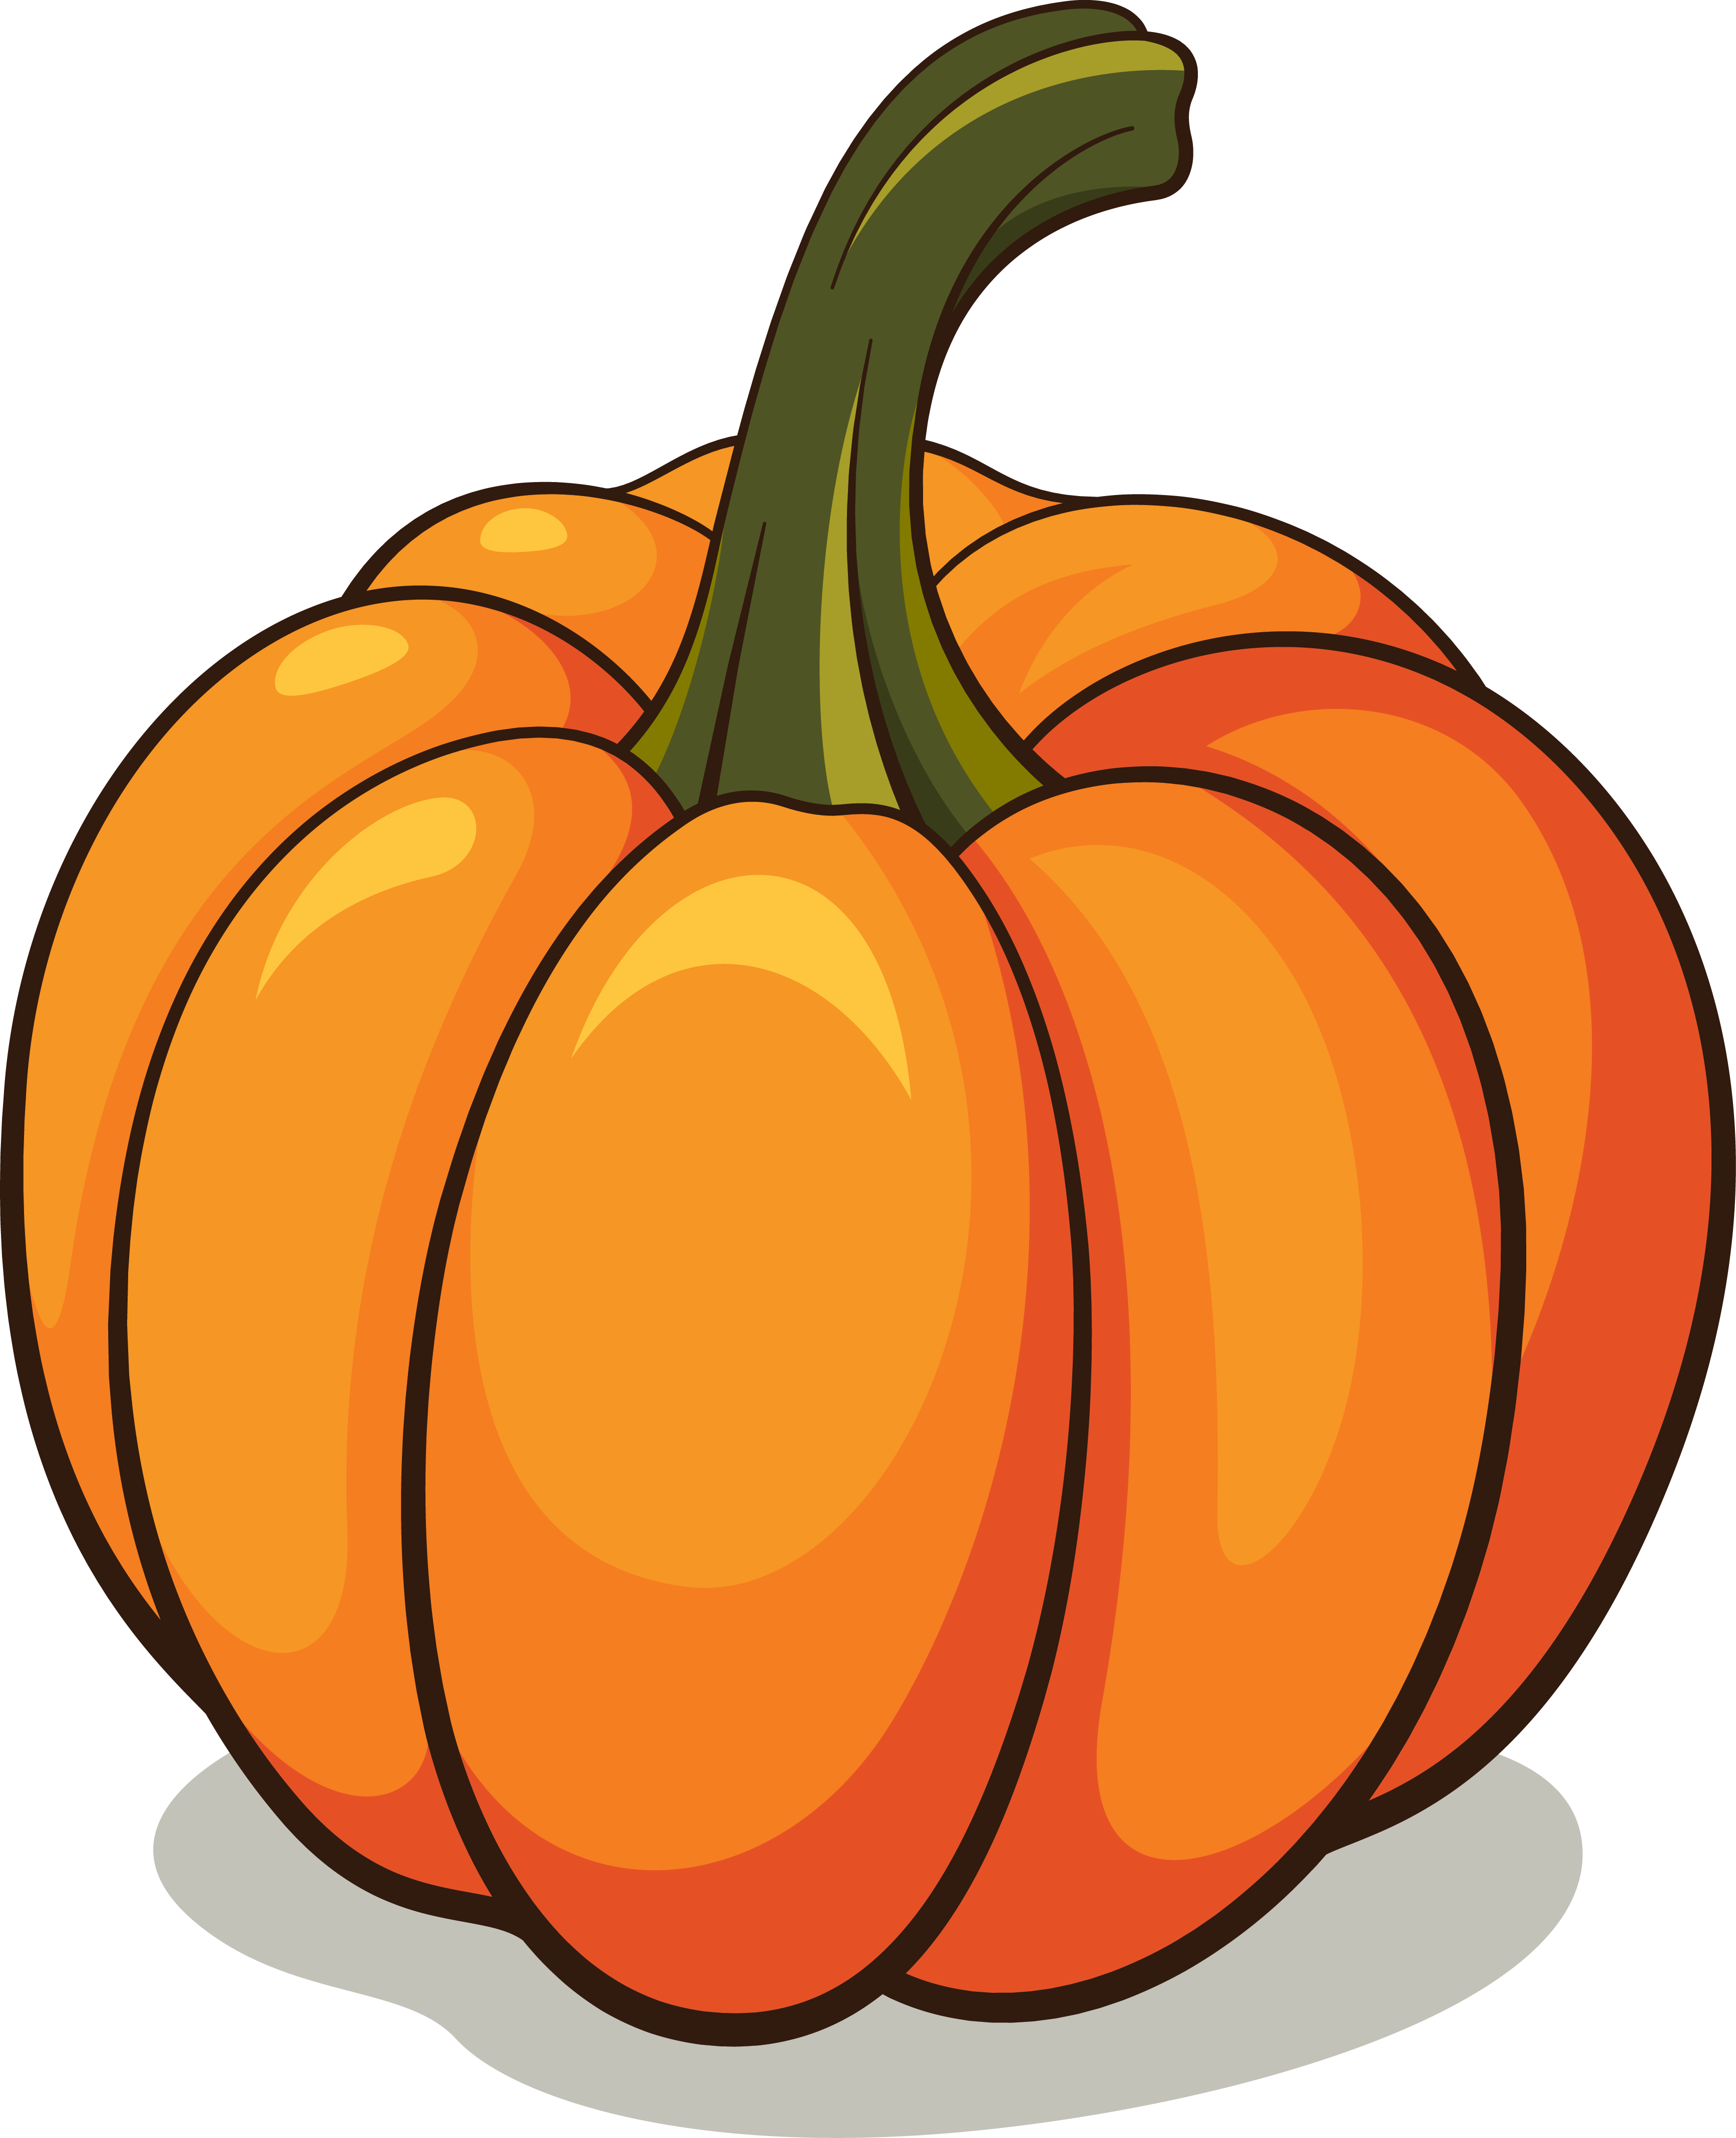 Pumpkin and gourd clipart vector freeuse library Uncategorized Knox United Church Edwards vector freeuse library